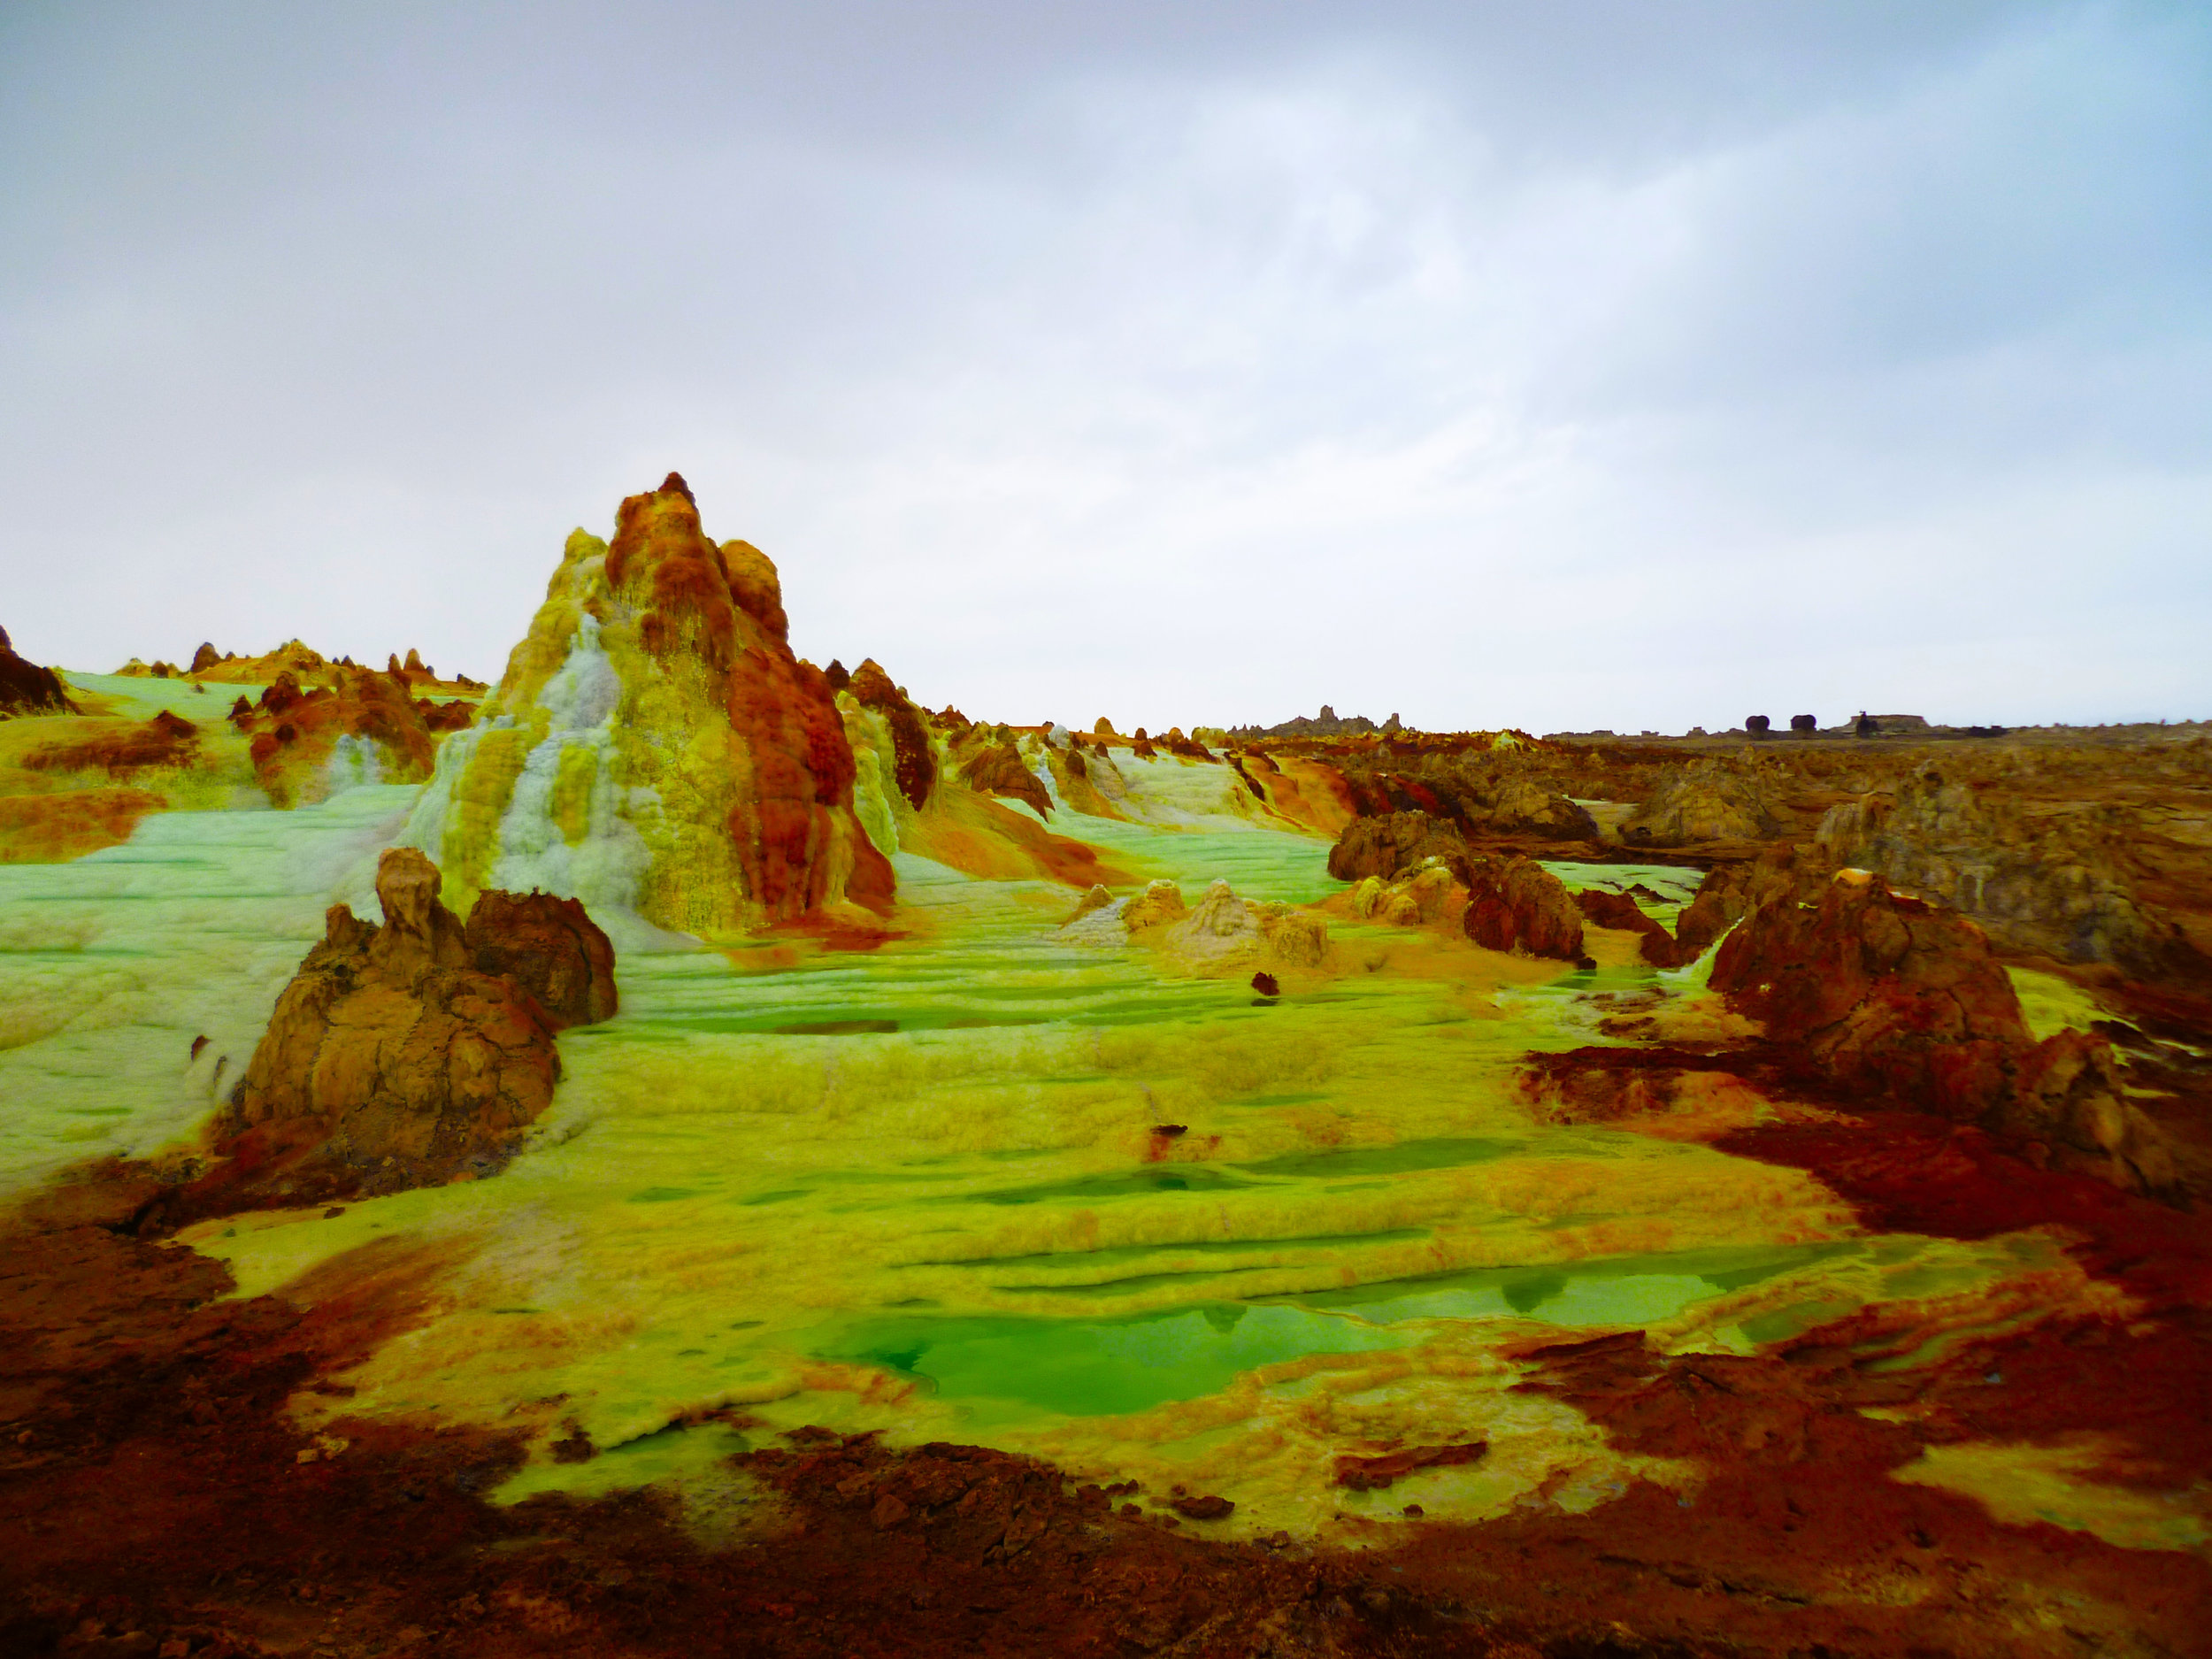 Sulpherous yellow mountains dominate the landscape...